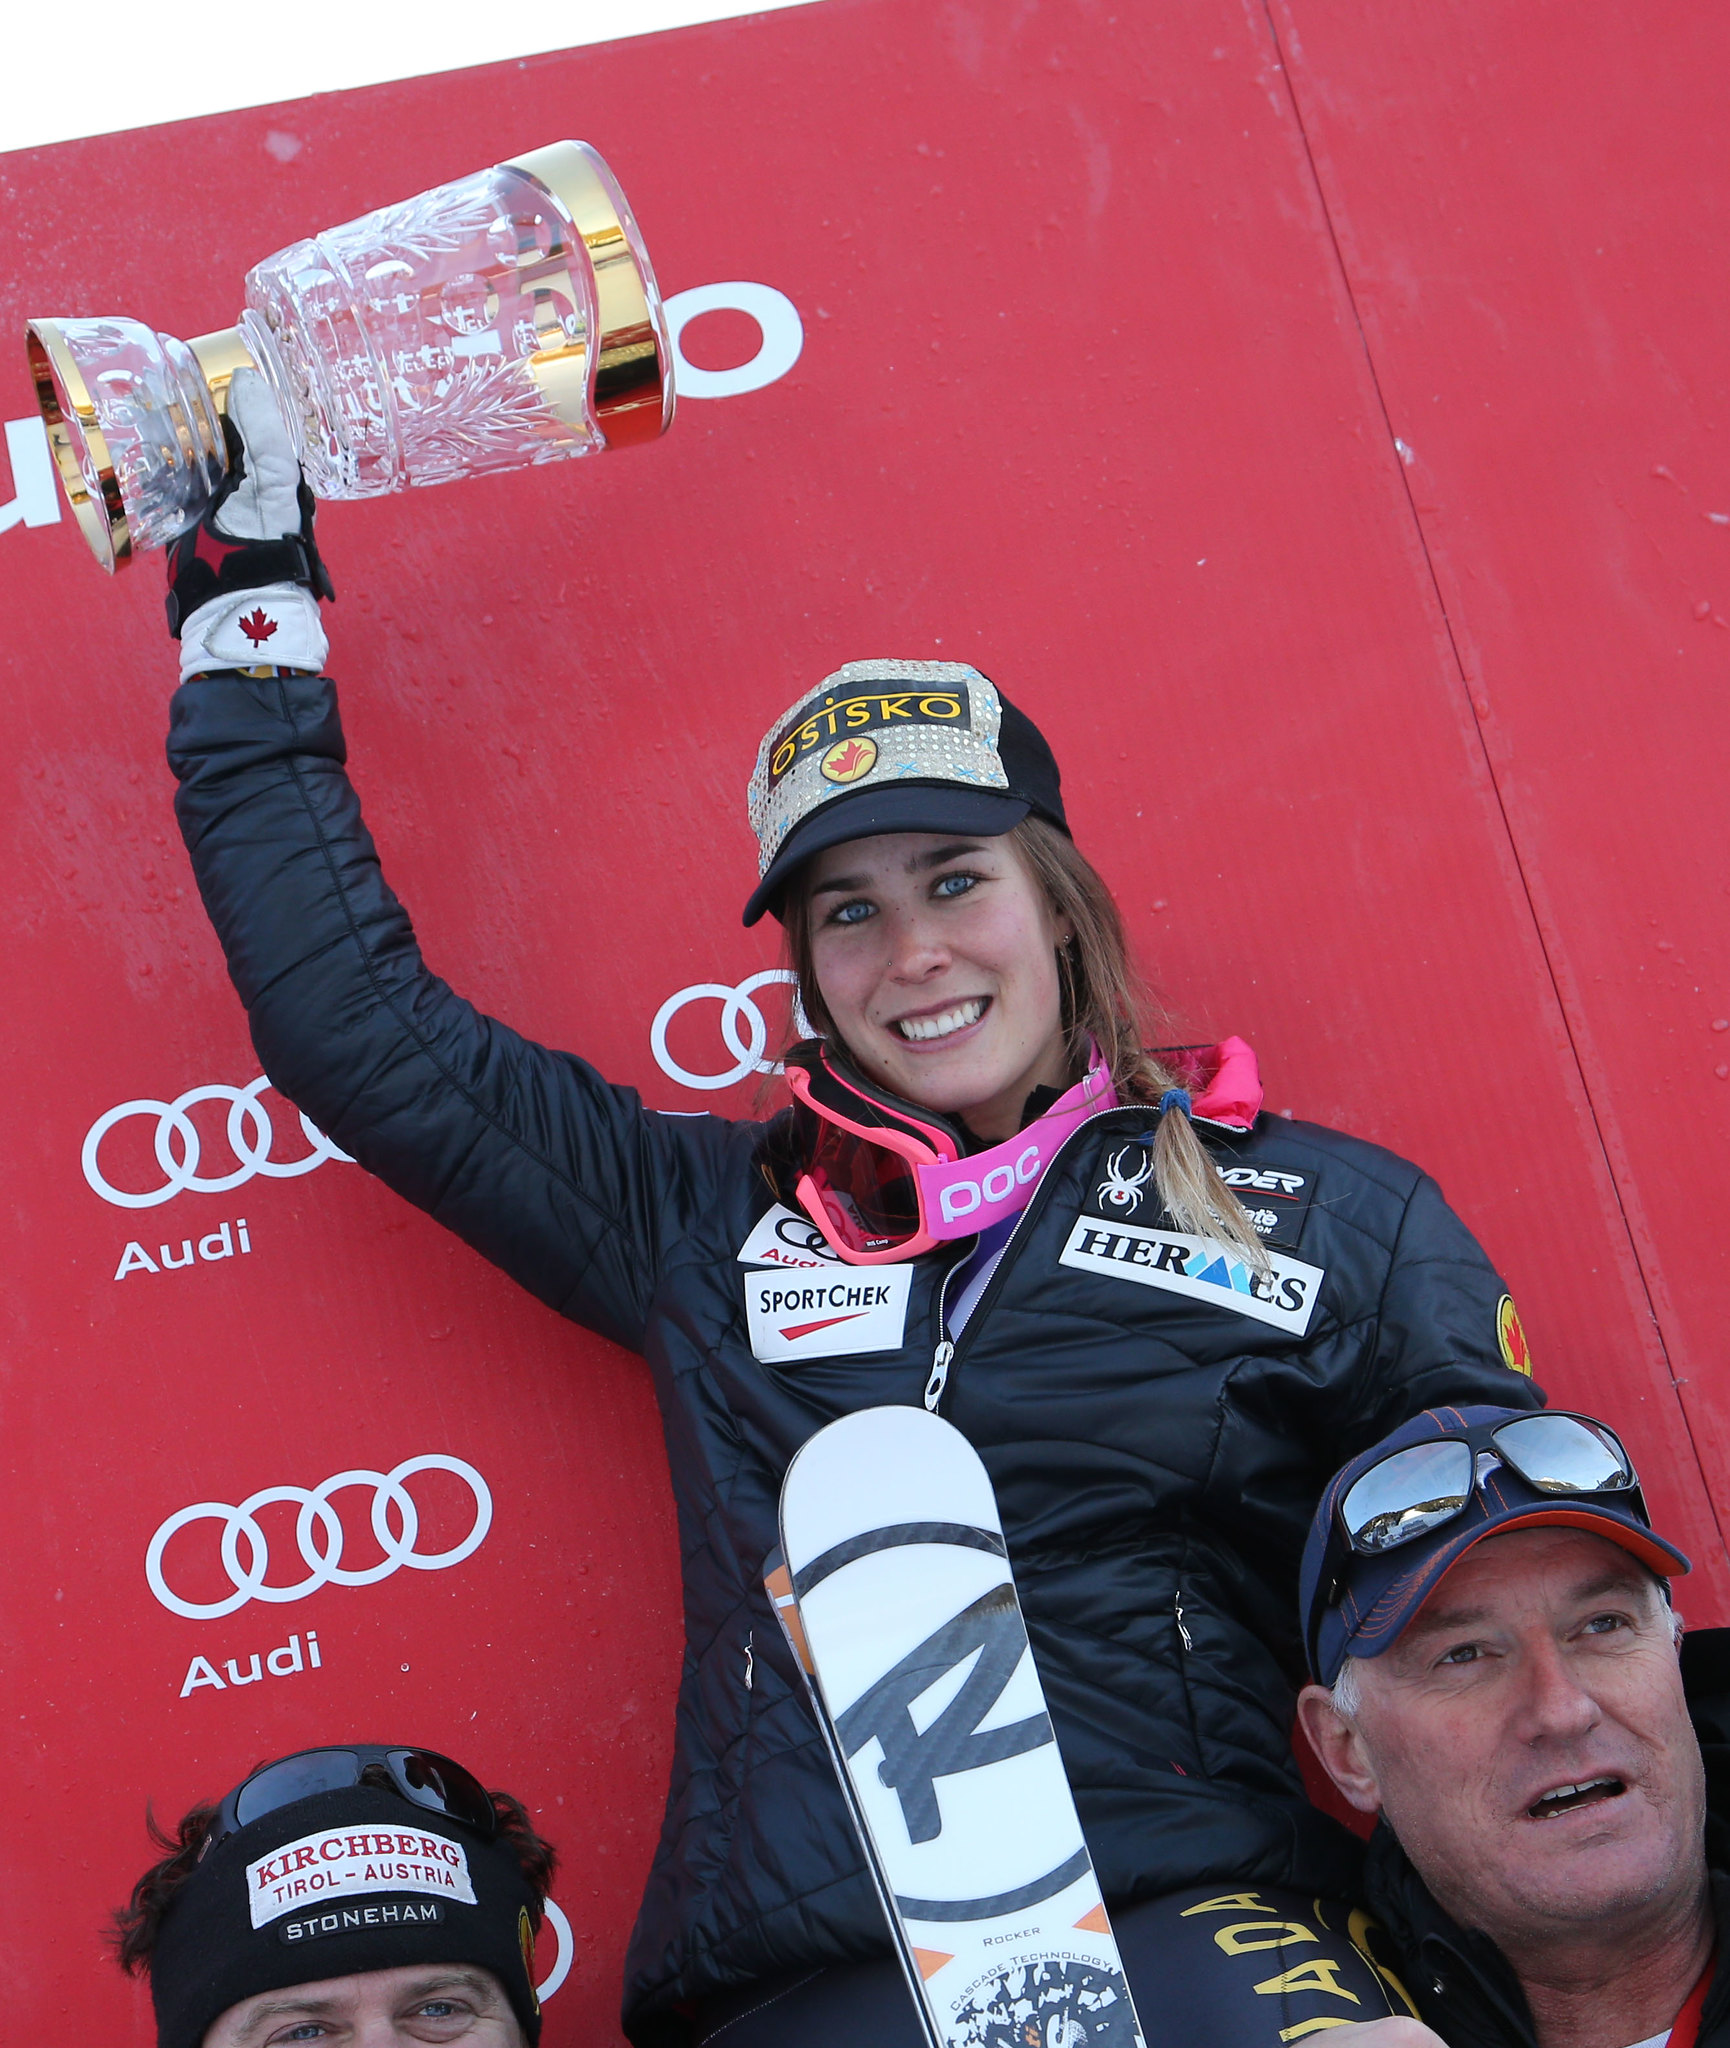 Gagnon celebrates with her team following a win in the super combined in Altenmarkt, AUT